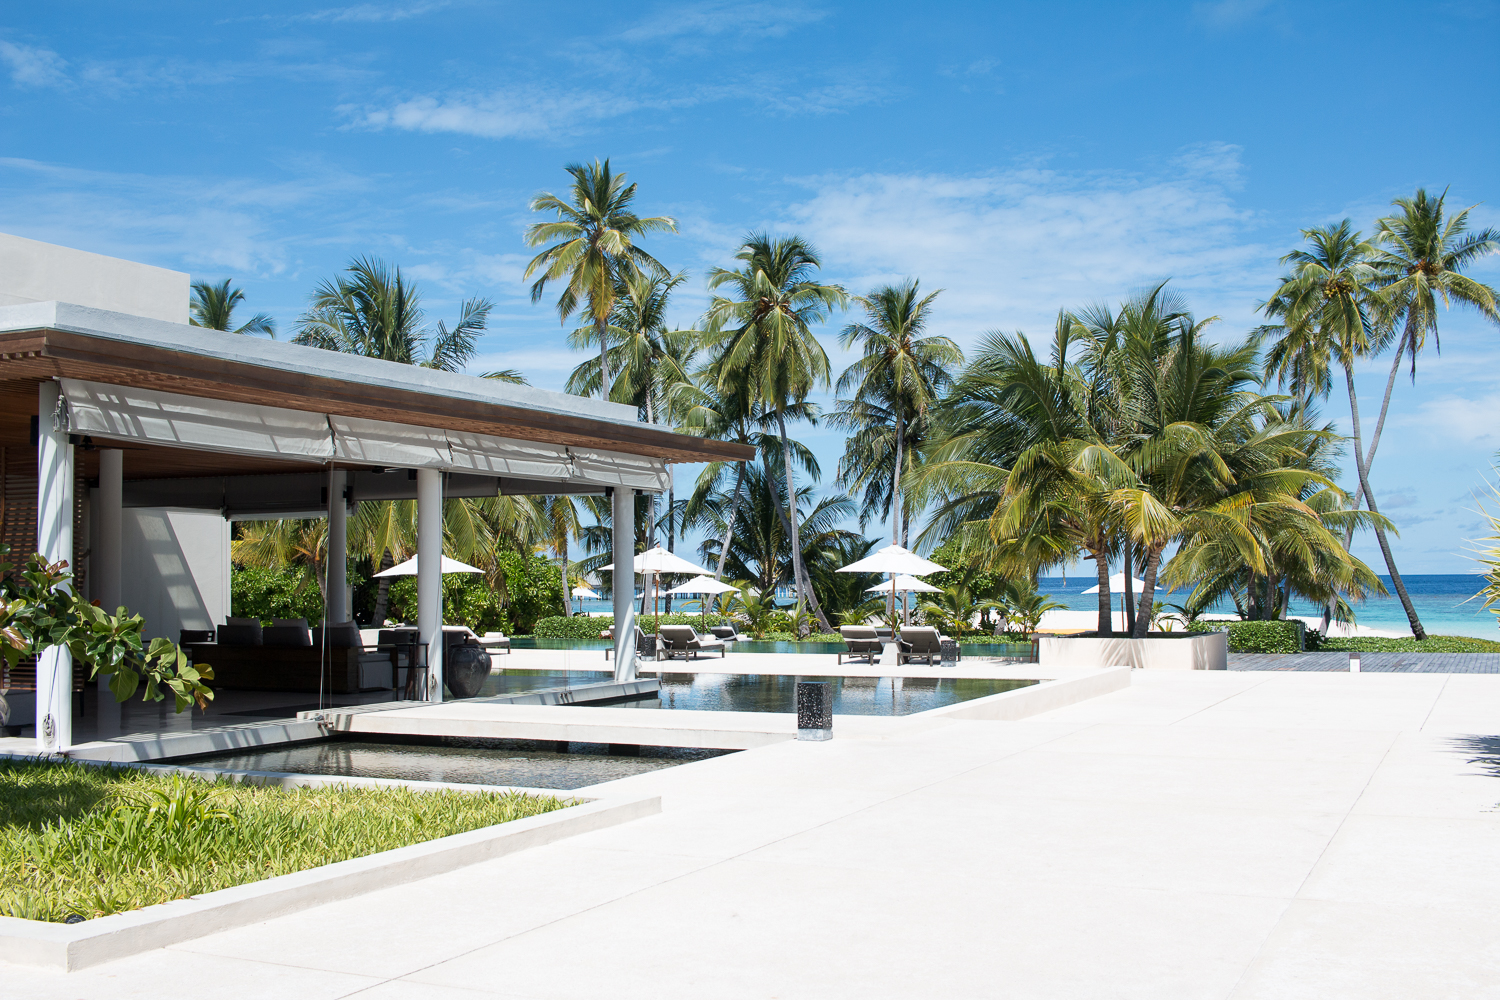 TRAVELS: Park Hyatt Maldives Hadahaa Hotel Review | Bikinis & Passports